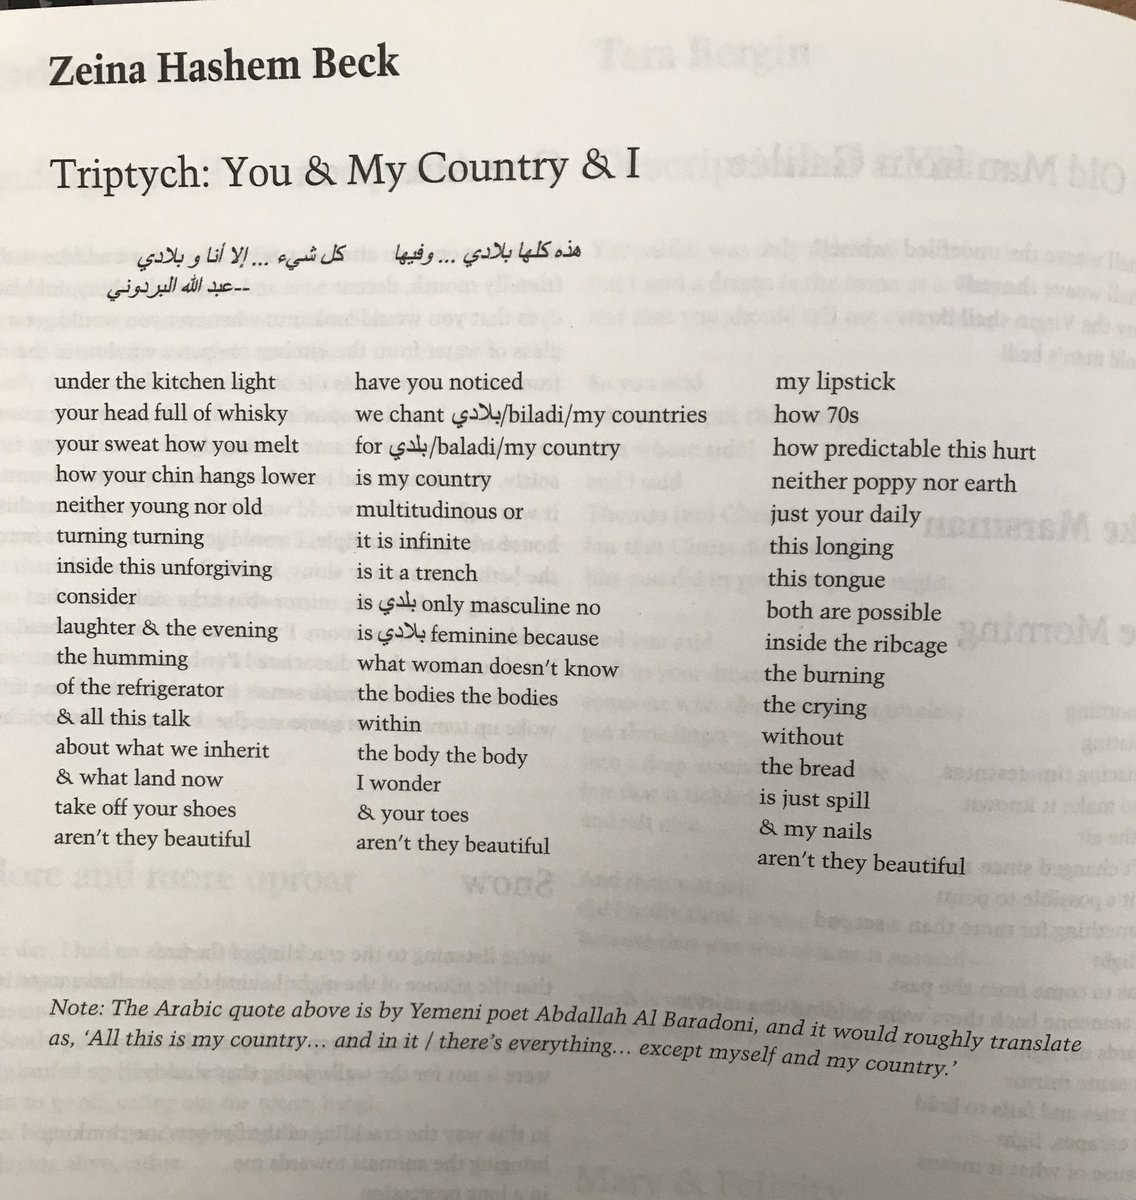 Zeina Hashem Beck On Twitter Thrilled To Have This Triptych In Poetry London Read It Vertically Horizontally Arrived In My Inbox Today A Valentine Gift This A Love Poem Too